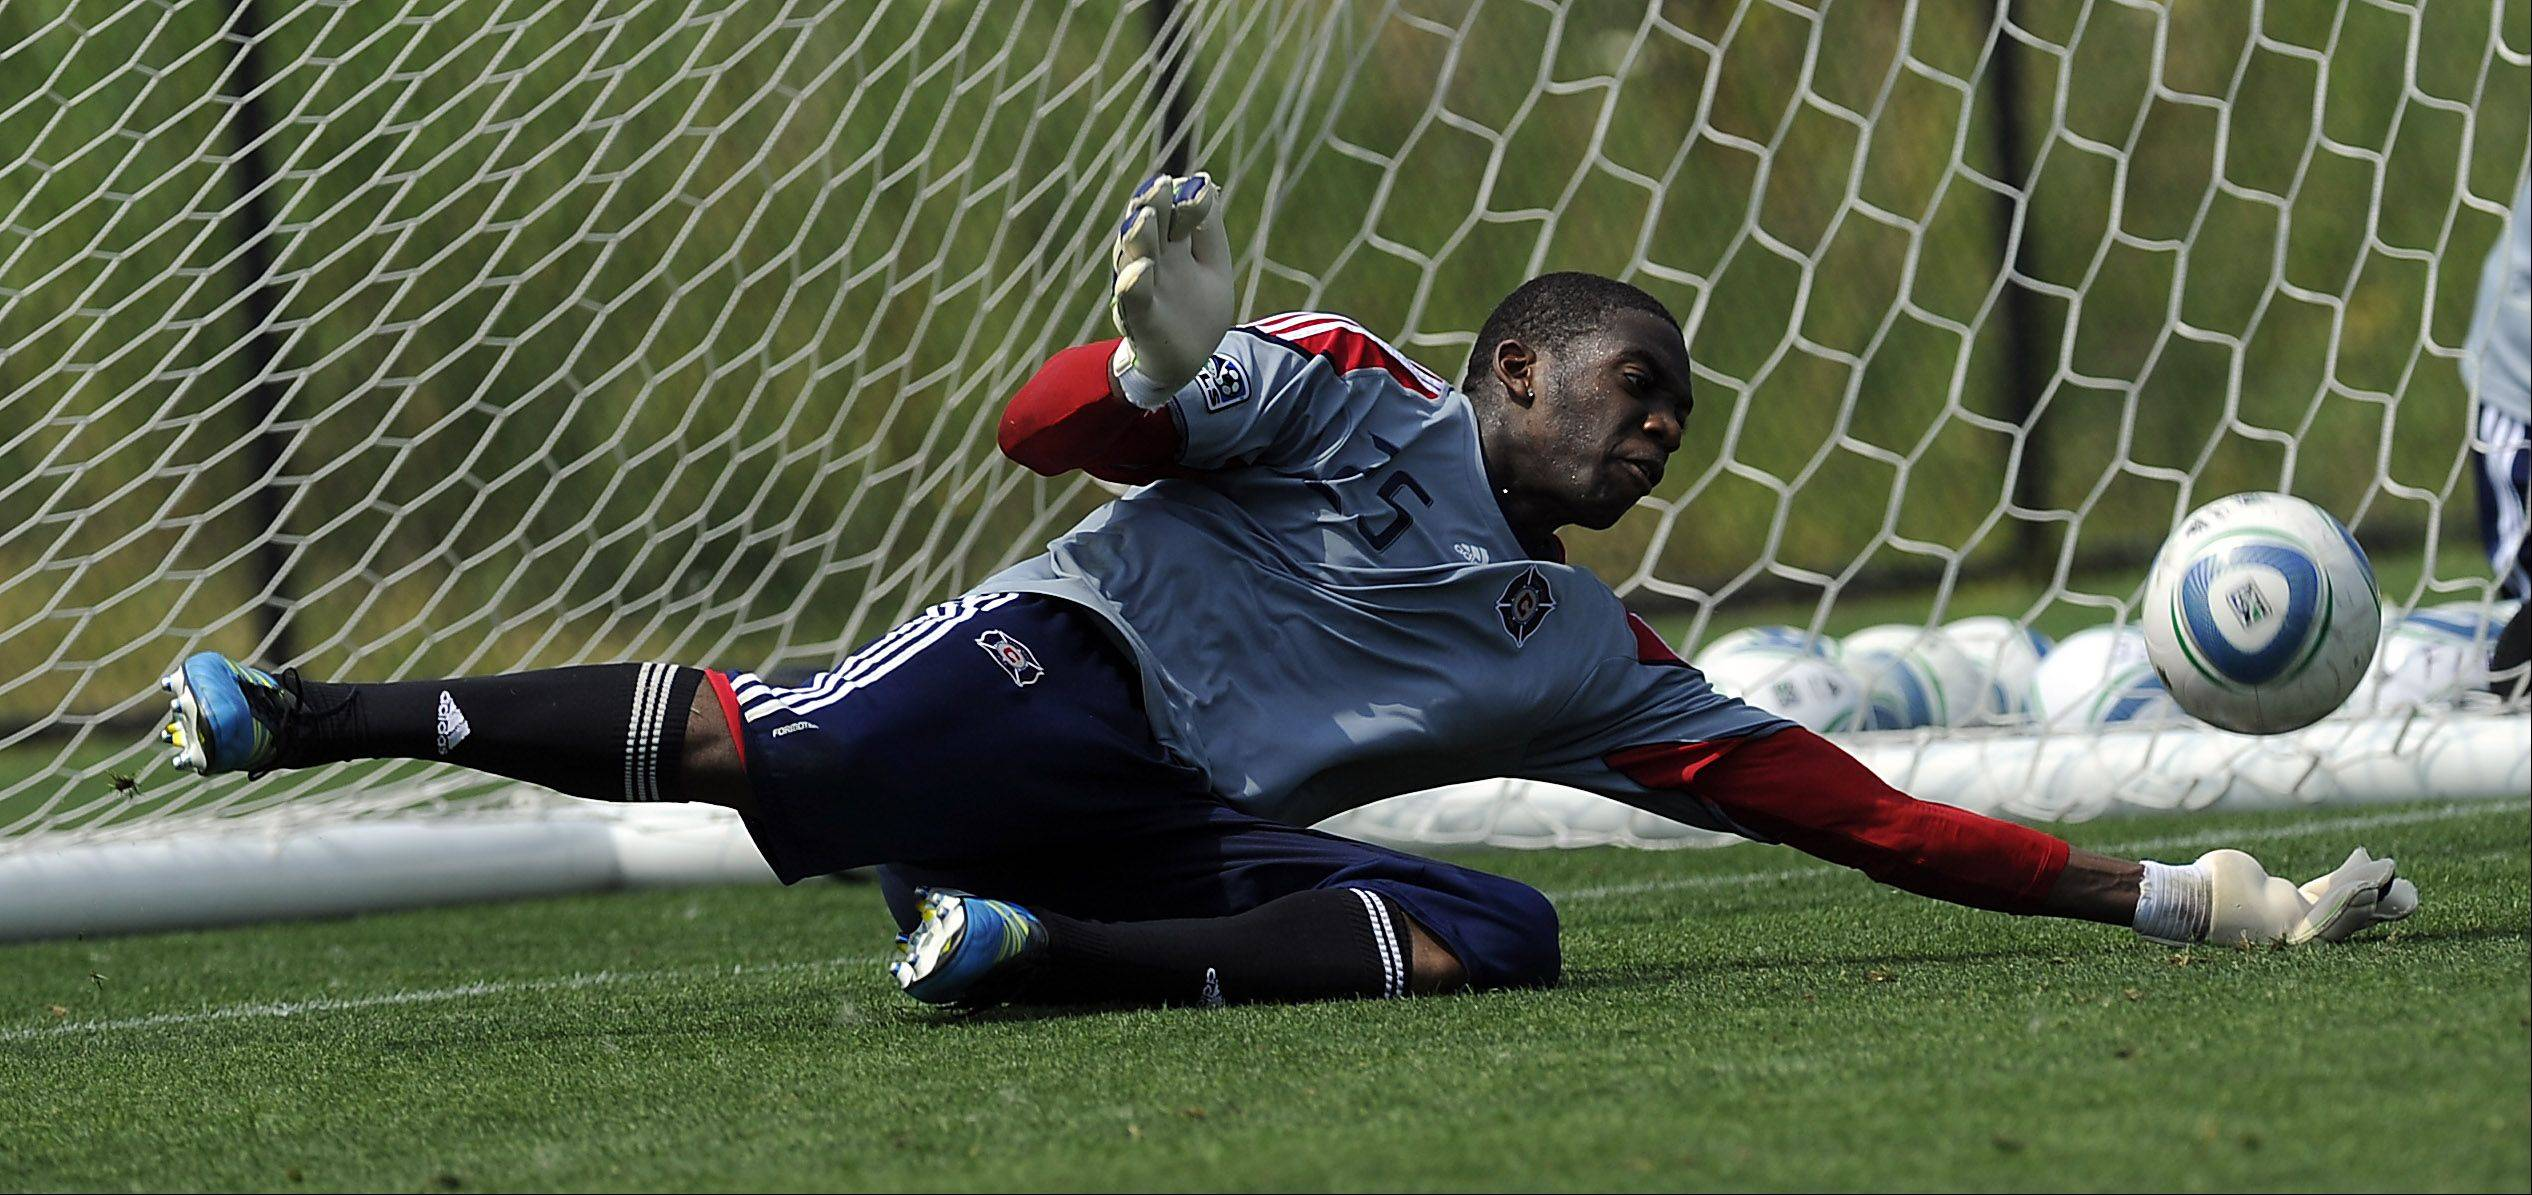 Chicago Fire goalie Sean Johnson will head to England next week for a training session with Everton of the English Premier League. He will work with American goalkeeper Tim Howard and U.S. national team goalkeeper coach Chris Woods.